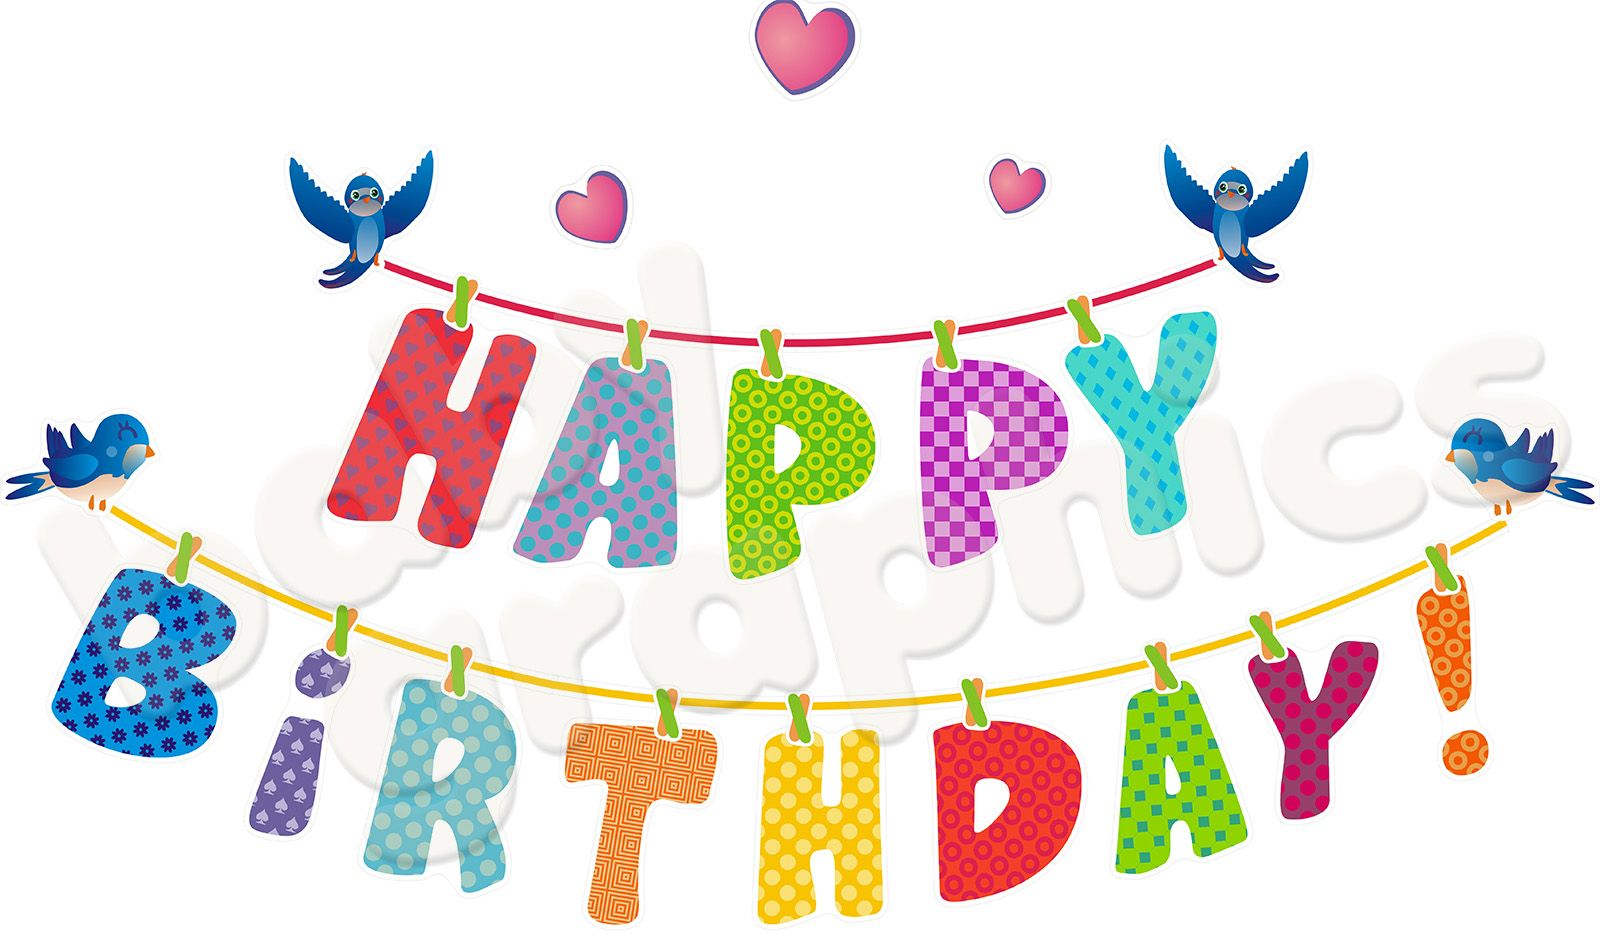 About Happy Birthday Letters Removable Reusable Wall Stickers